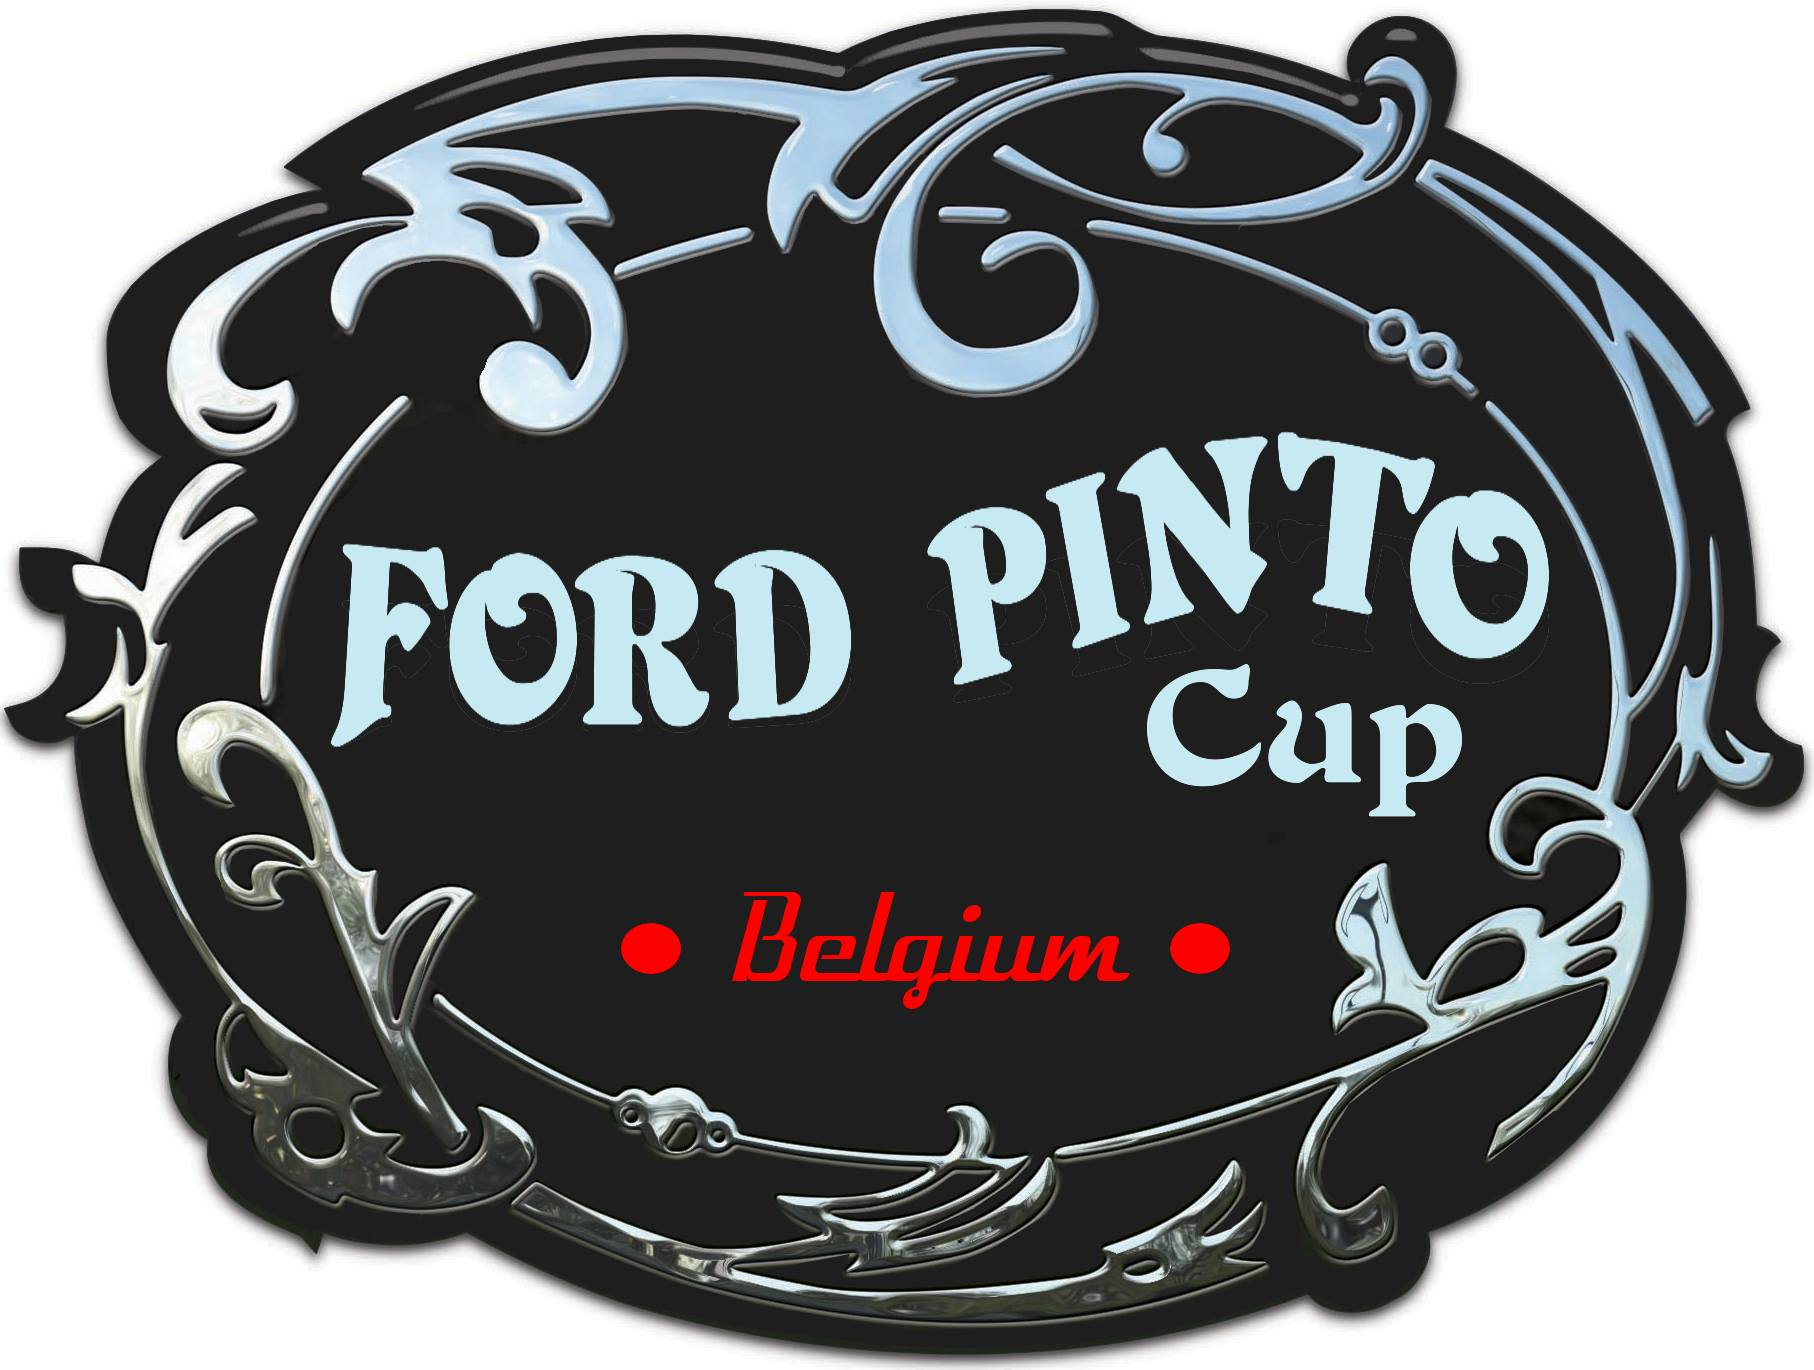 Ford Pinto Cup Belgie